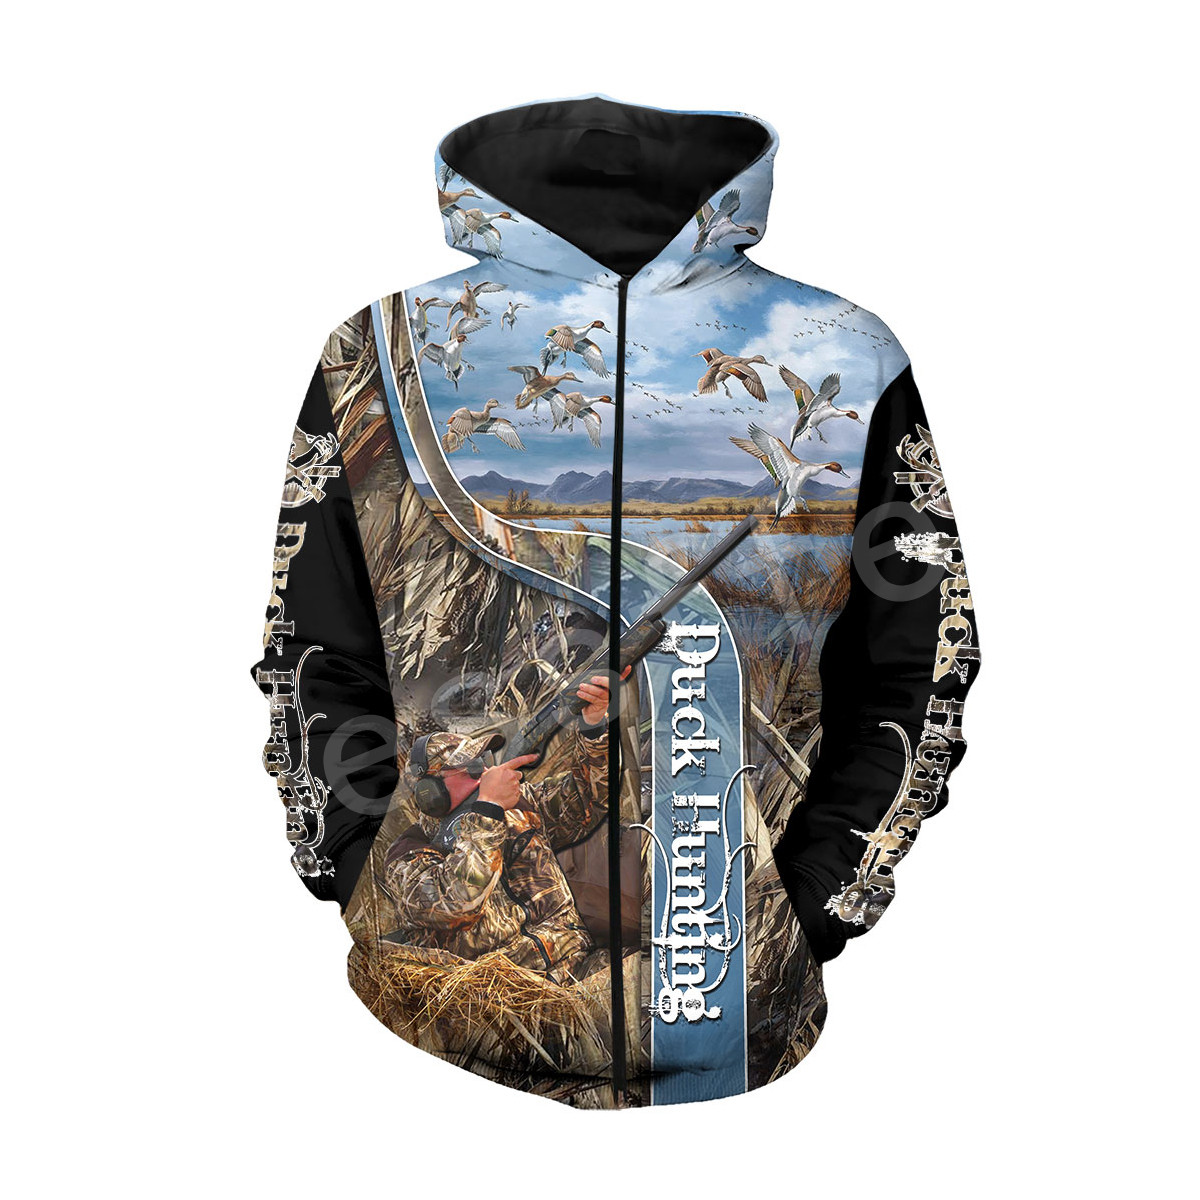 Tessffel Animal Hunter Legend Camo Tracksuit 3DPrinted Hoodie Sweatshirt Jacket shirts Men Women HIPHOP casual Harajuku style15 in Hoodies amp Sweatshirts from Men 39 s Clothing